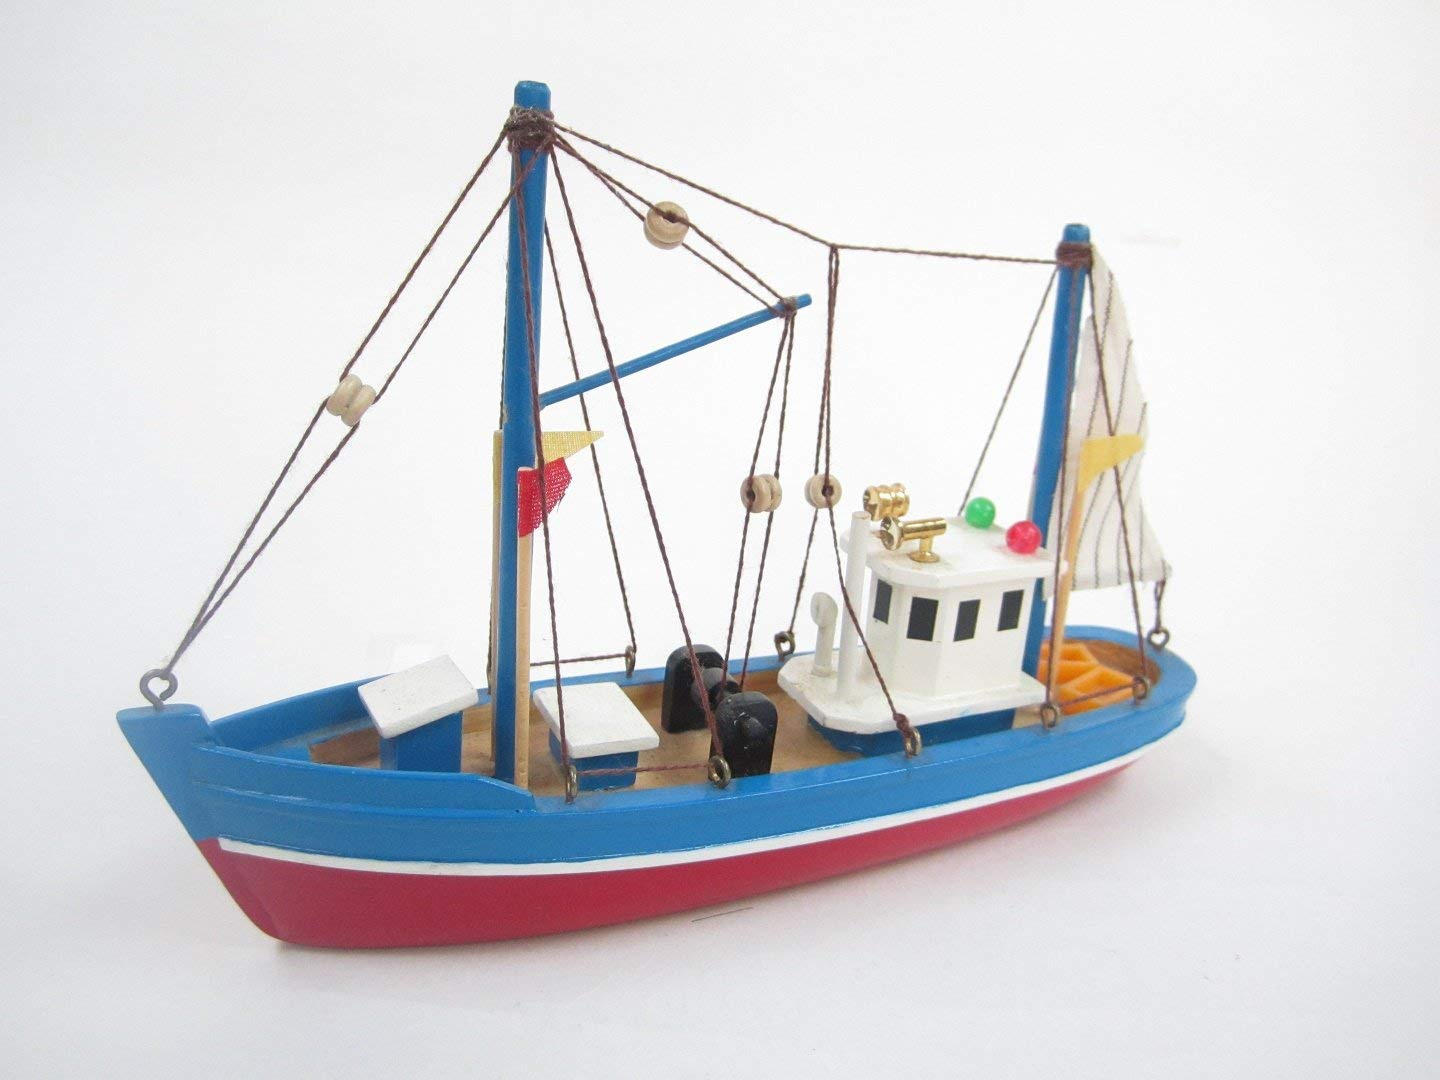 Blue Dolphin Starter Boat Kit Build Your Own Fishing Boat Wooden Model Ship